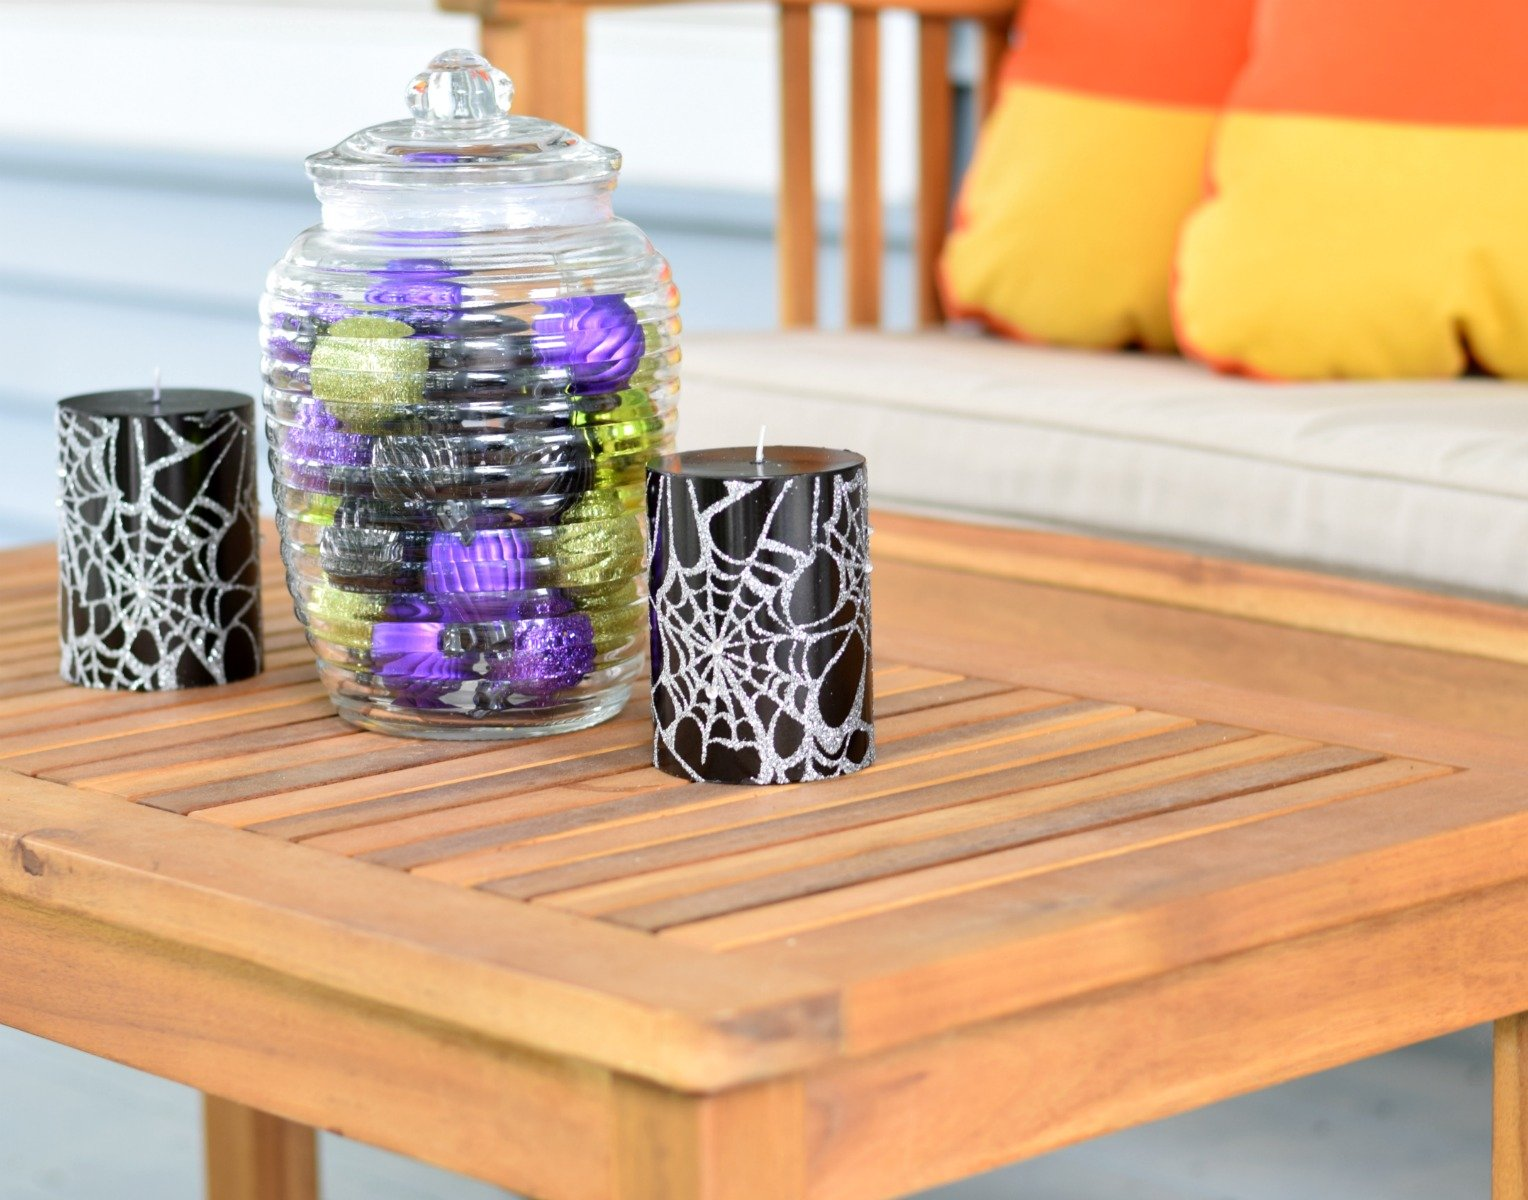 Tablescape for Halloween front porch decor ideas